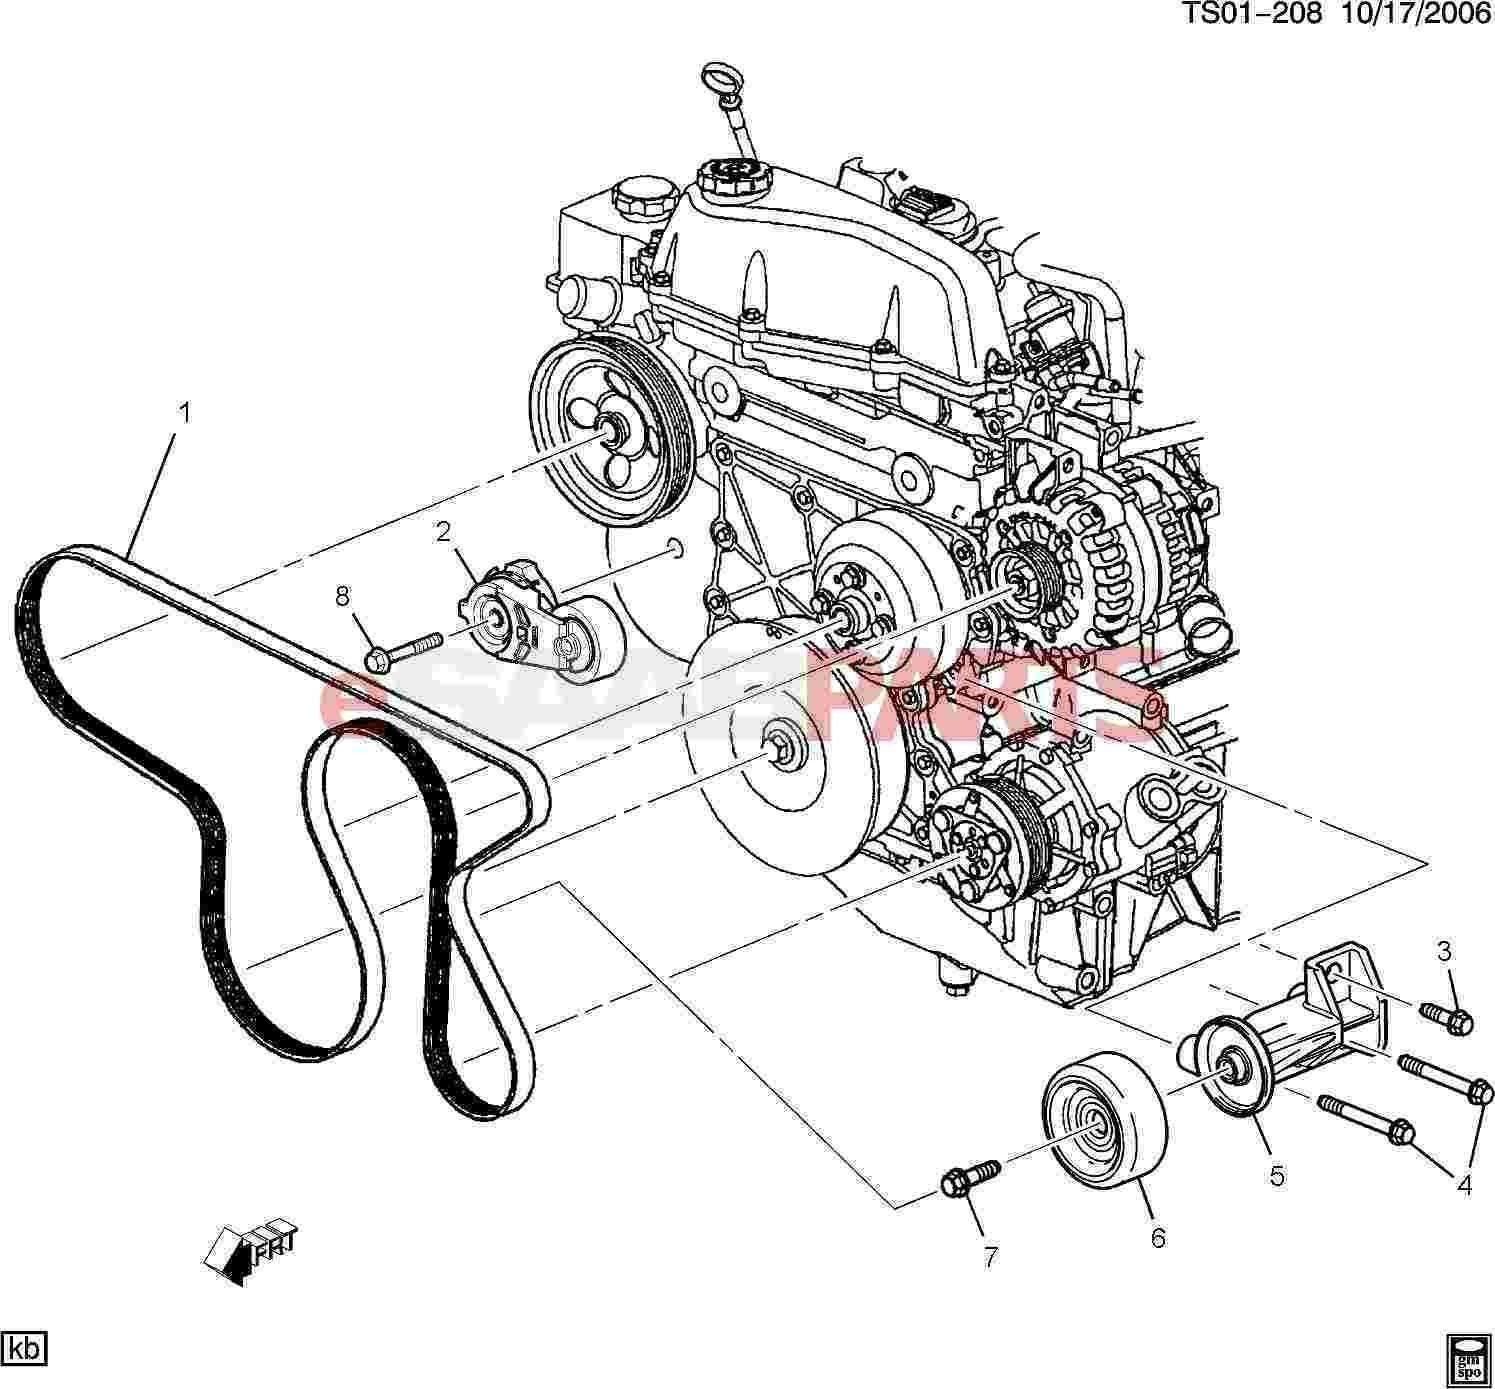 Toyota Avensis Engine Diagram 1997 toyota Corolla Engine Diagram 2002 toyota Corolla Engine Of Toyota Avensis Engine Diagram